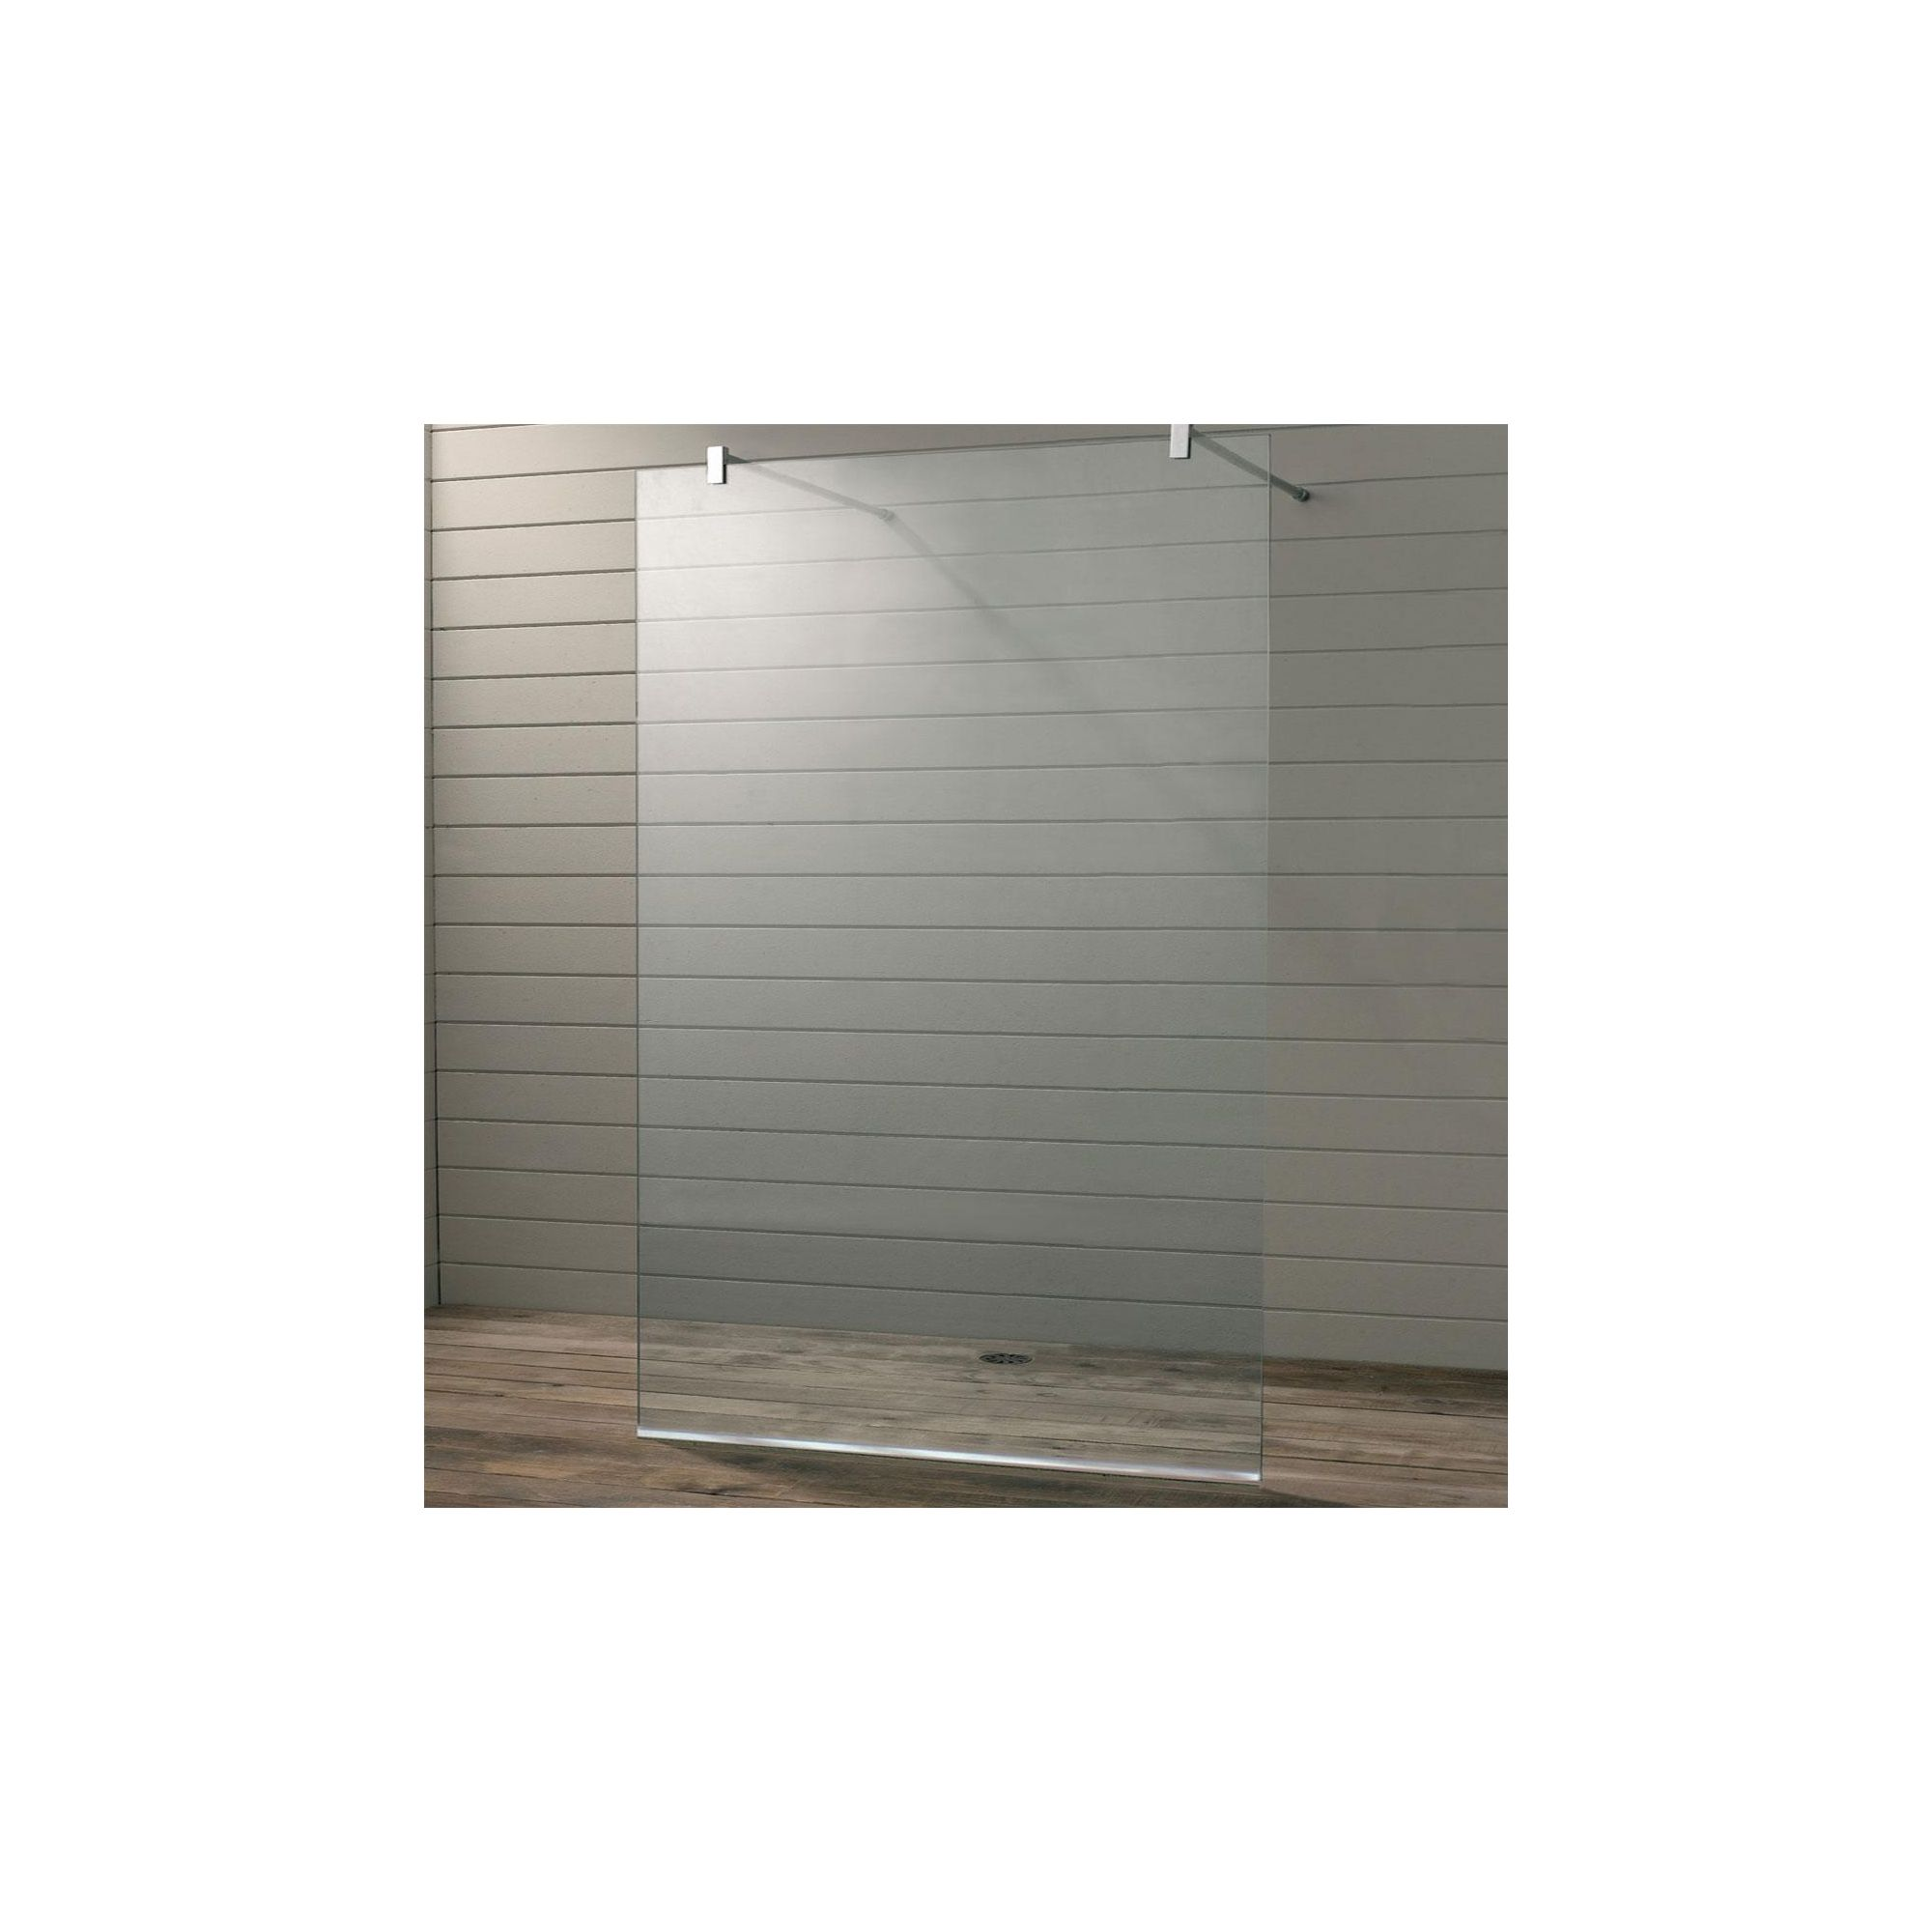 Duchy Premium Wet Room Glass Shower Panel, 1400mm x 900mm, 10mm Glass, Low Profile Tray at Tesco Direct